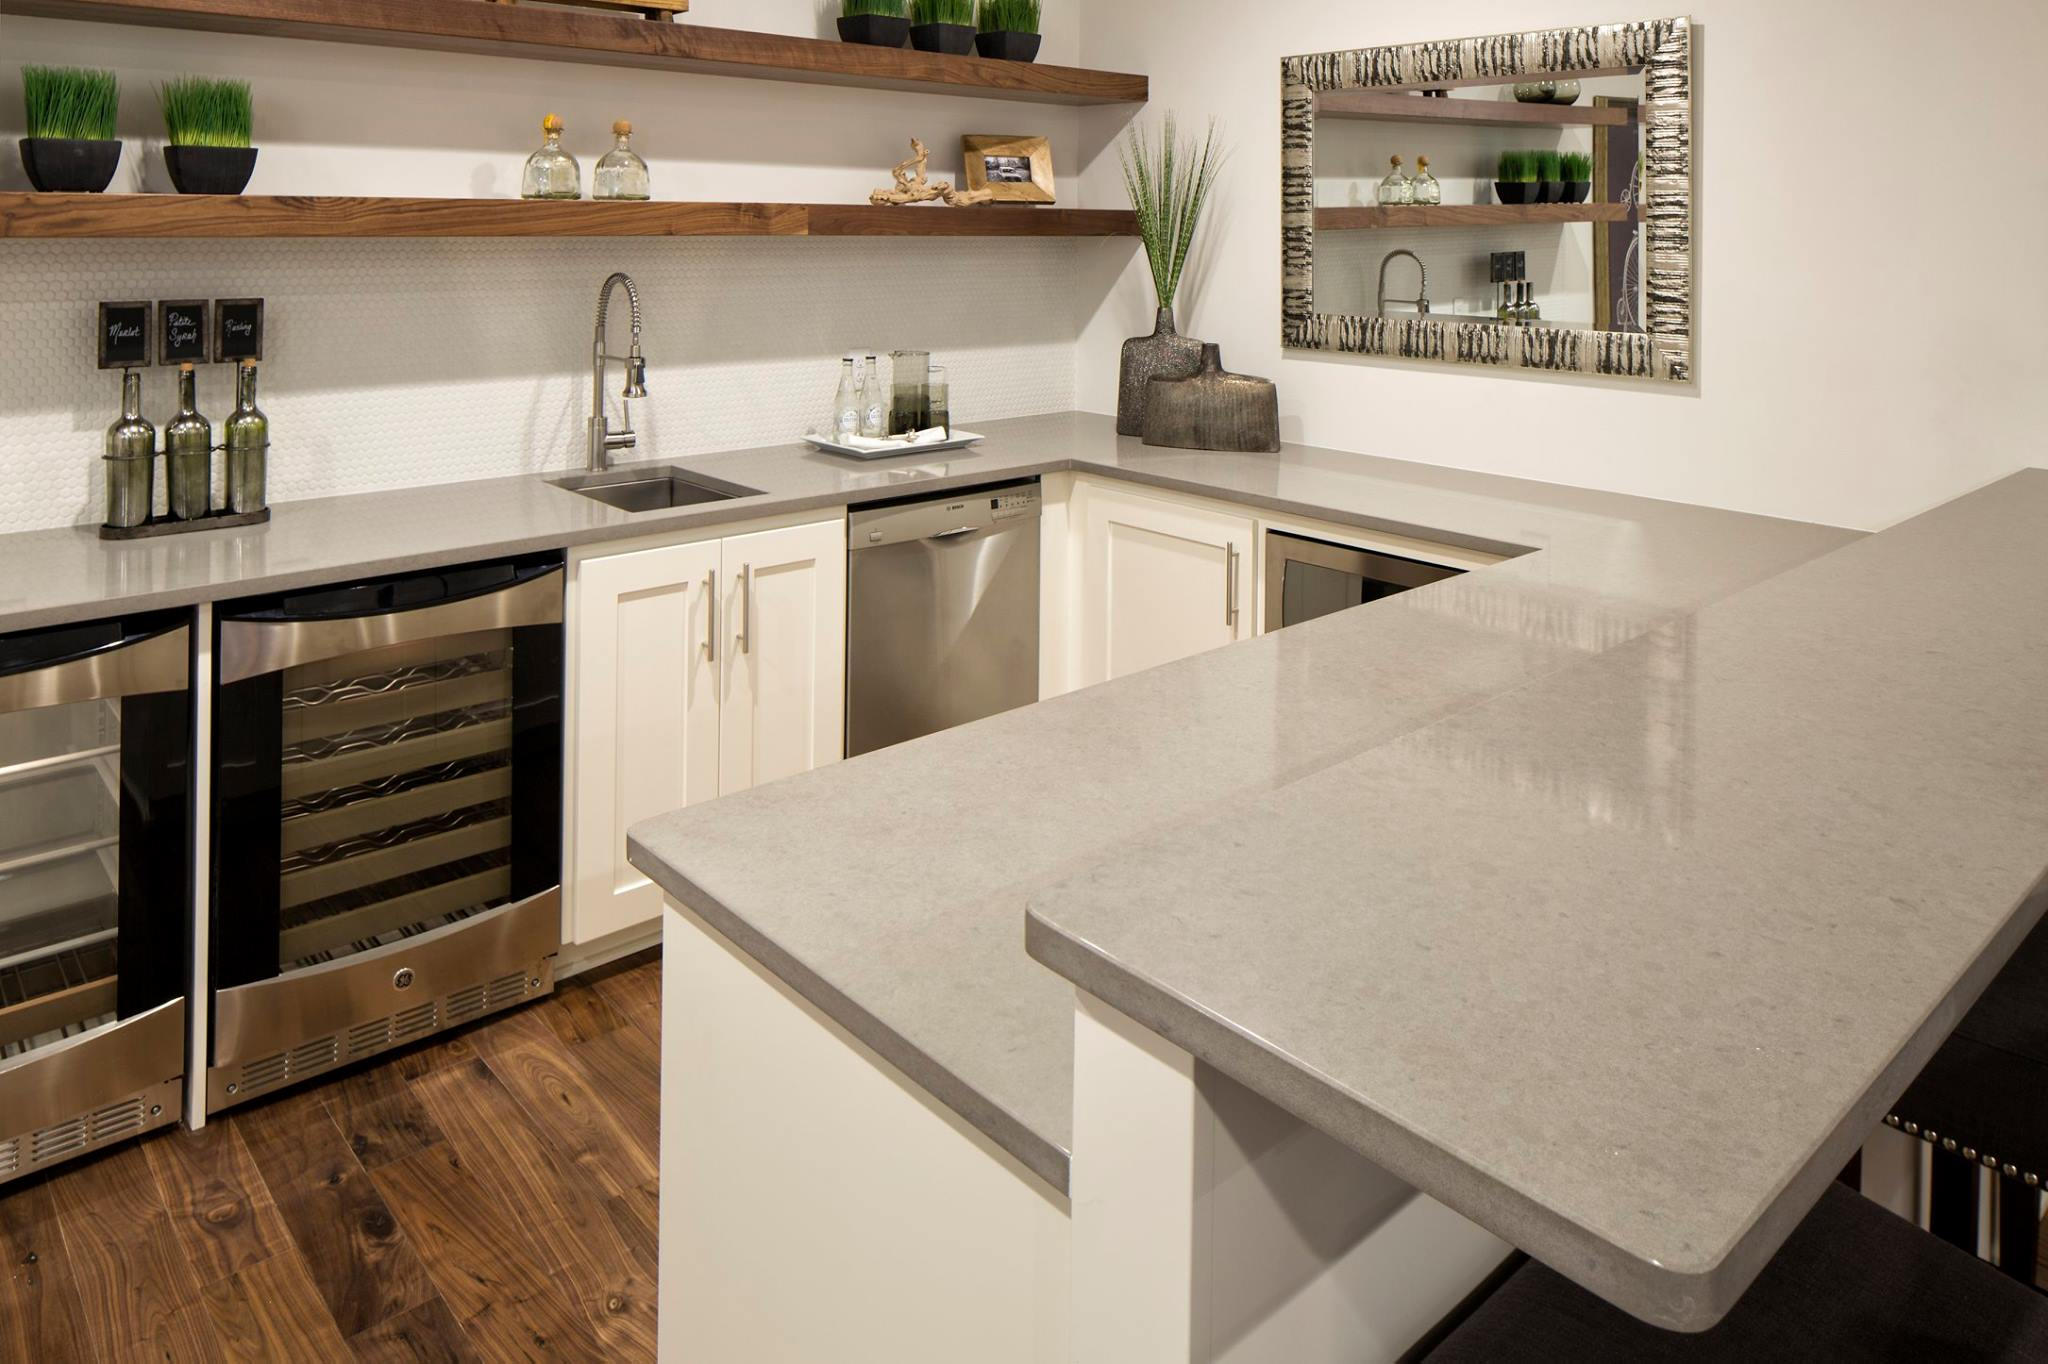 grey and white kitchen backsplash with Quartz Countertops Vs Granite Countertops on Beveled Arabesque Tiles as well Cvh24x24sub likewise Kitchen Backsplash Ideas furthermore Modular Kitchen In Black And White Theme moreover Gray White Kitchen Remodel.